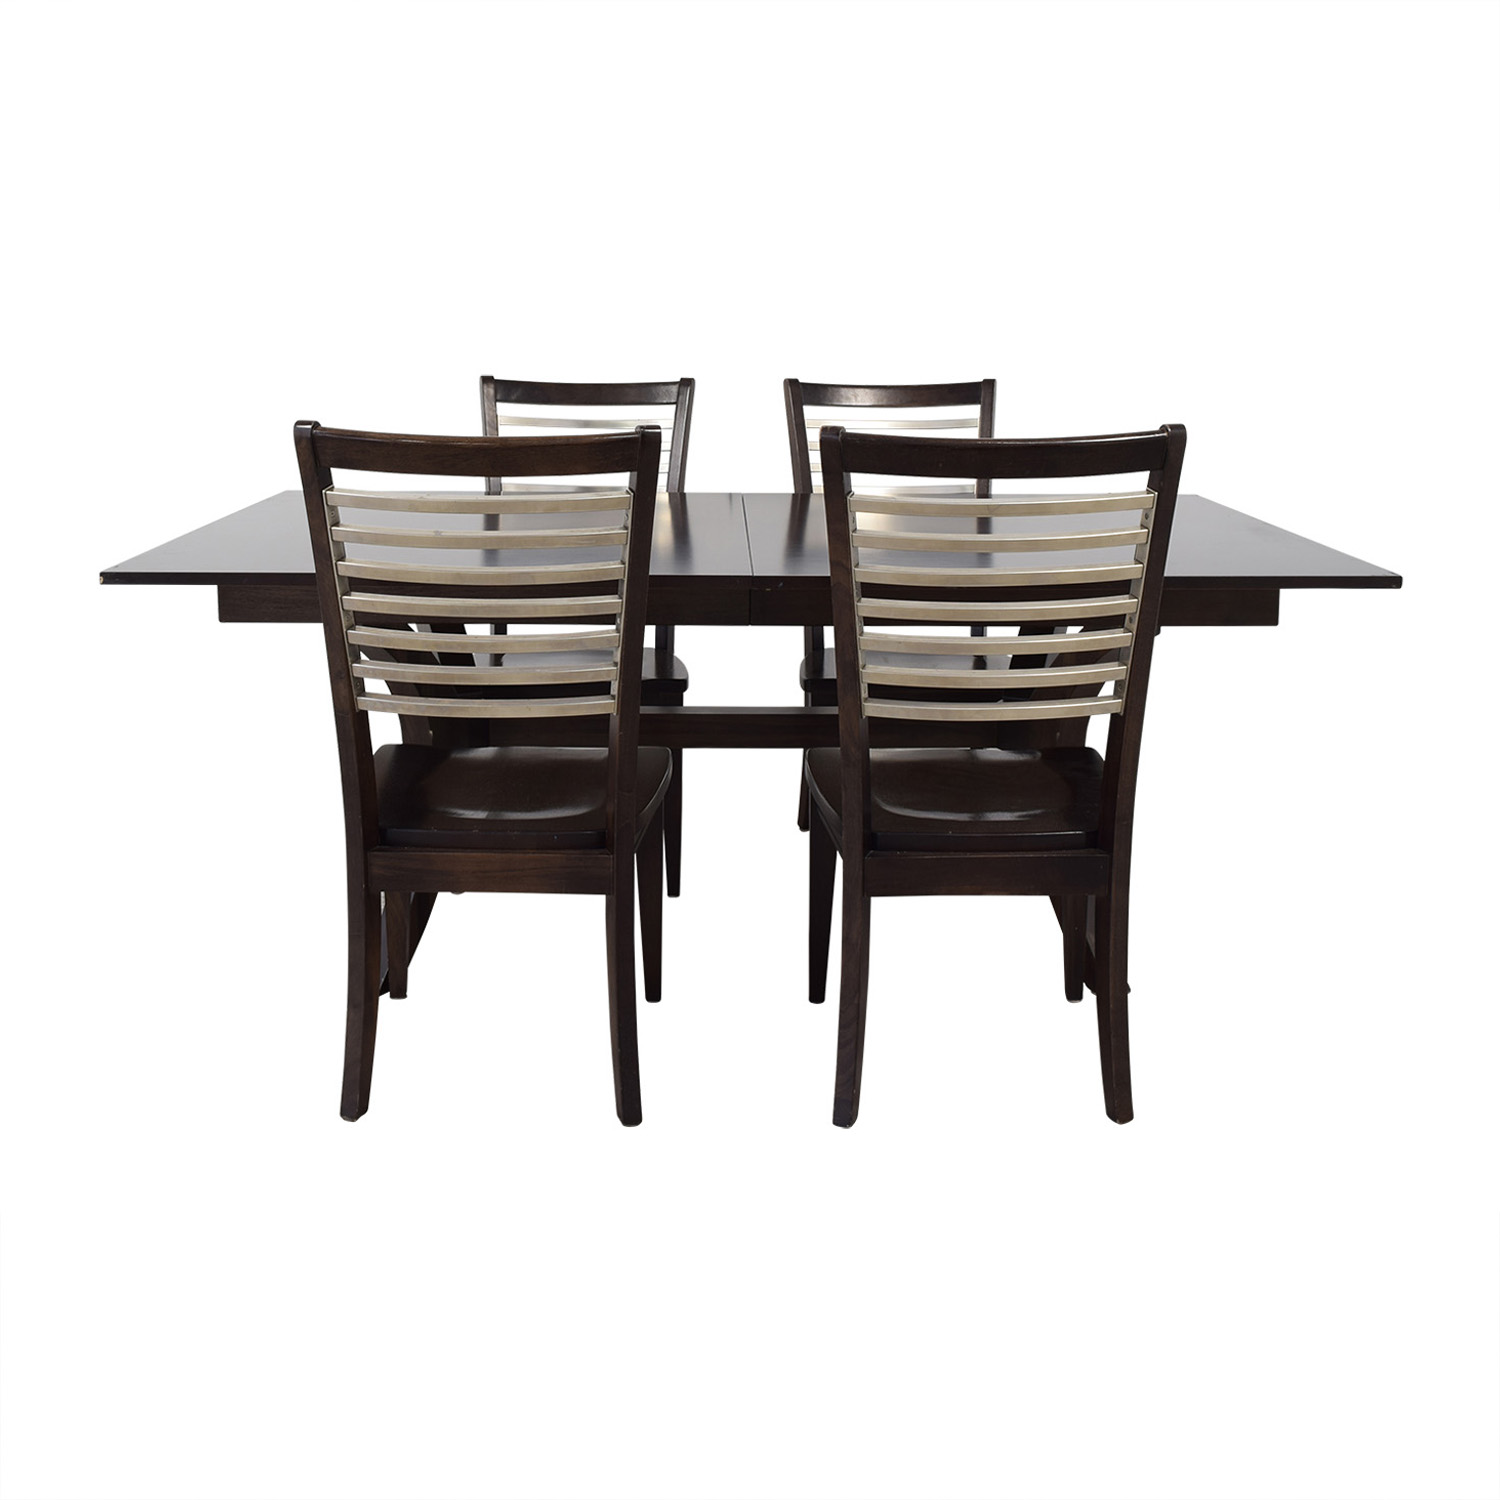 Bassett Furniture Bassett Furniture Extendable Dining Set on sale